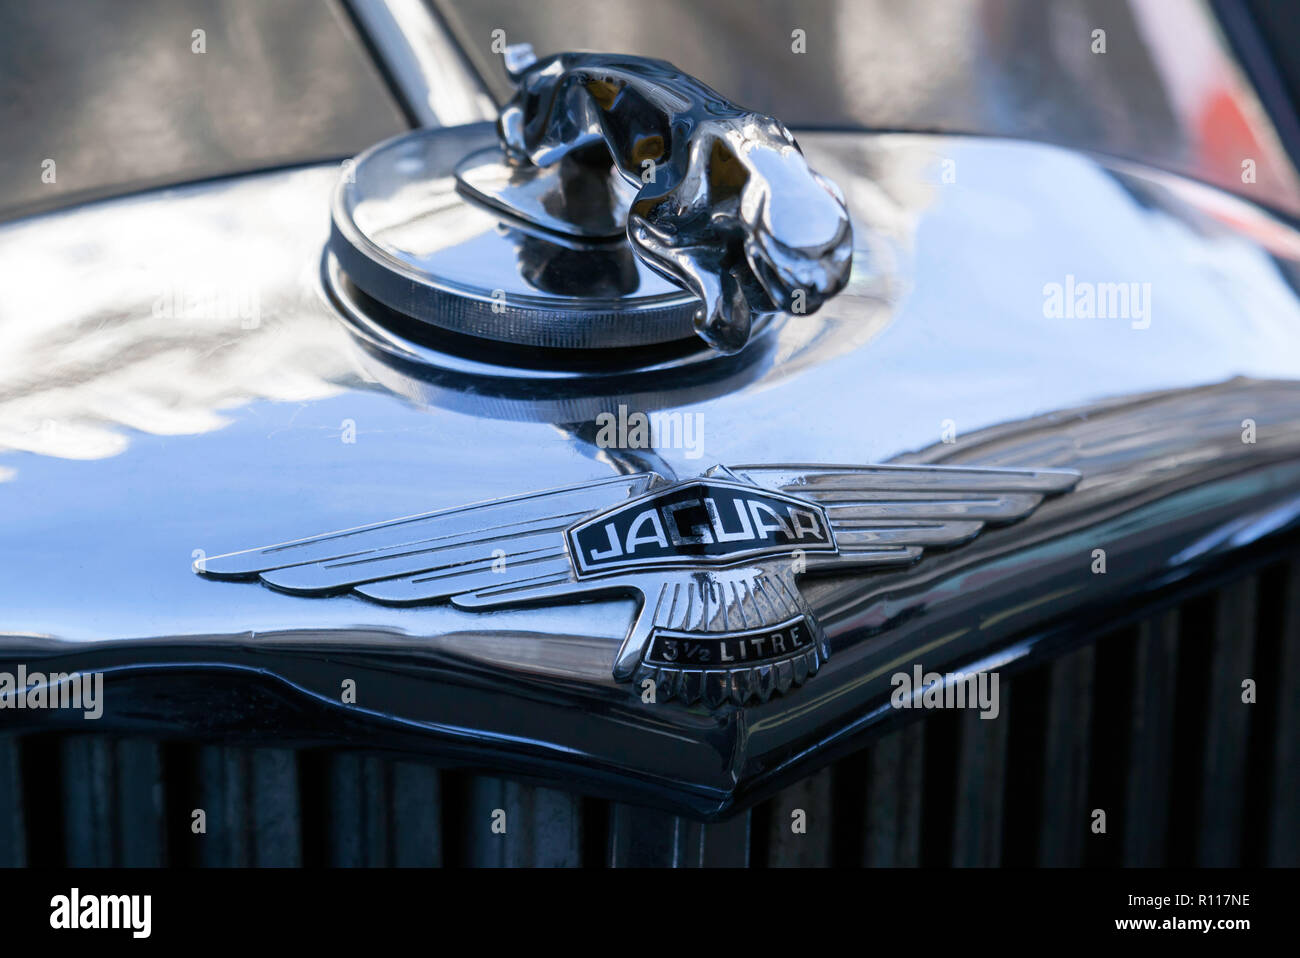 Close-up of a leaping Jaguar radiator cap mascot and Bonnett badge, on a 1950 Jaguar Mark V Saloon, on display at the Regents Street Motor Show 2018 Stock Photo